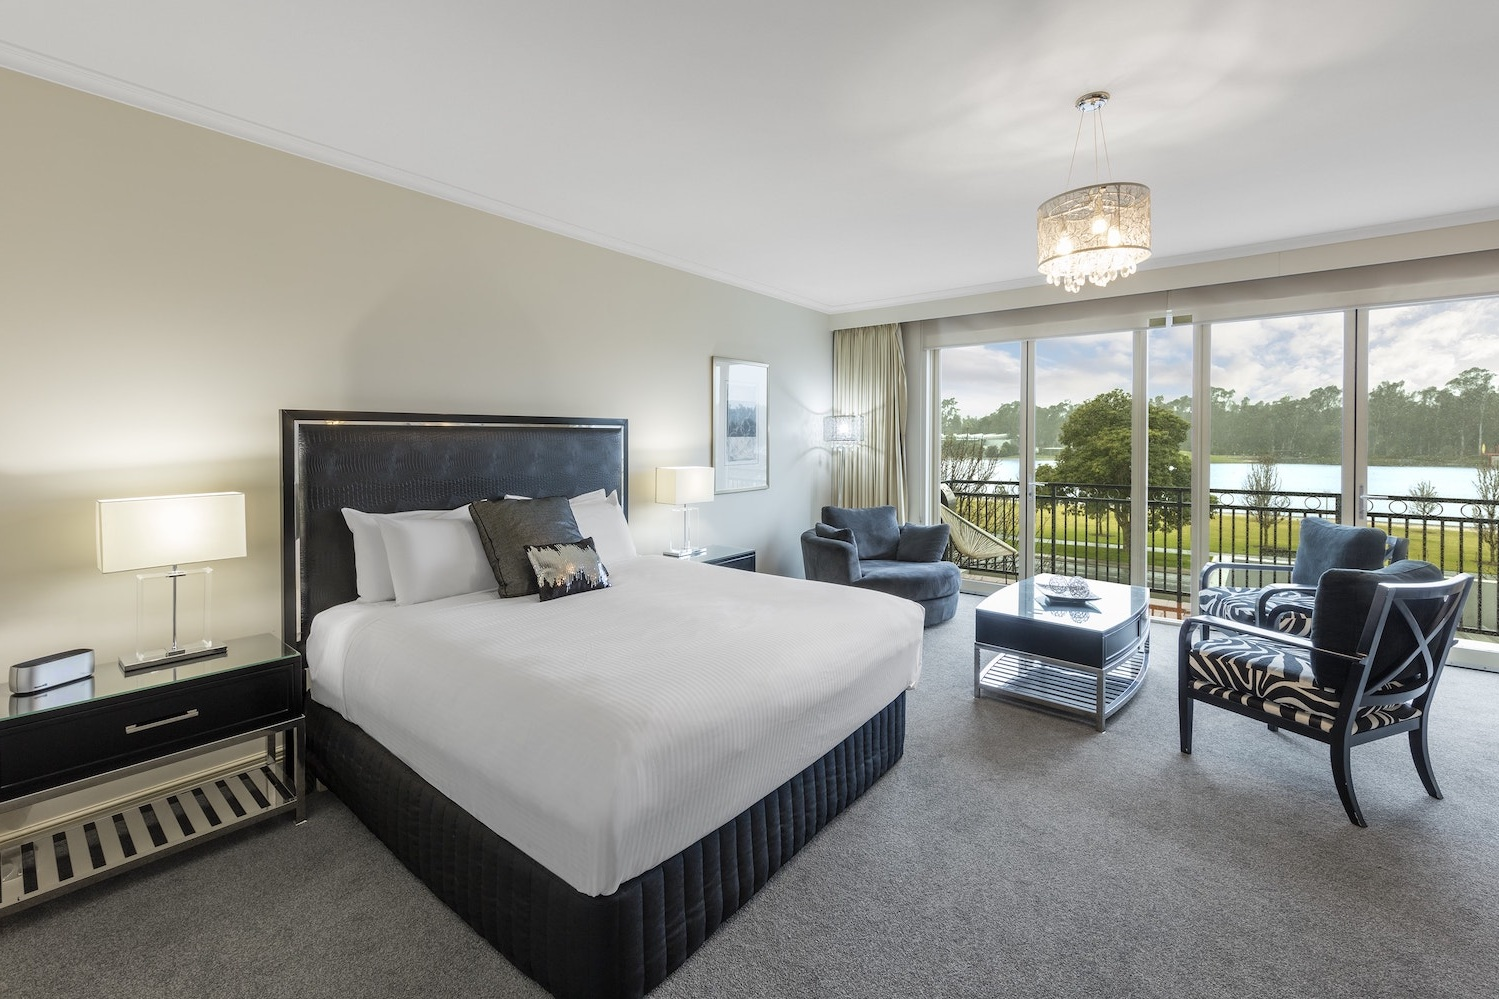 best-western-plus-the-carrington-shepparton-hotel-accommodation-executive-suite-1.jpg